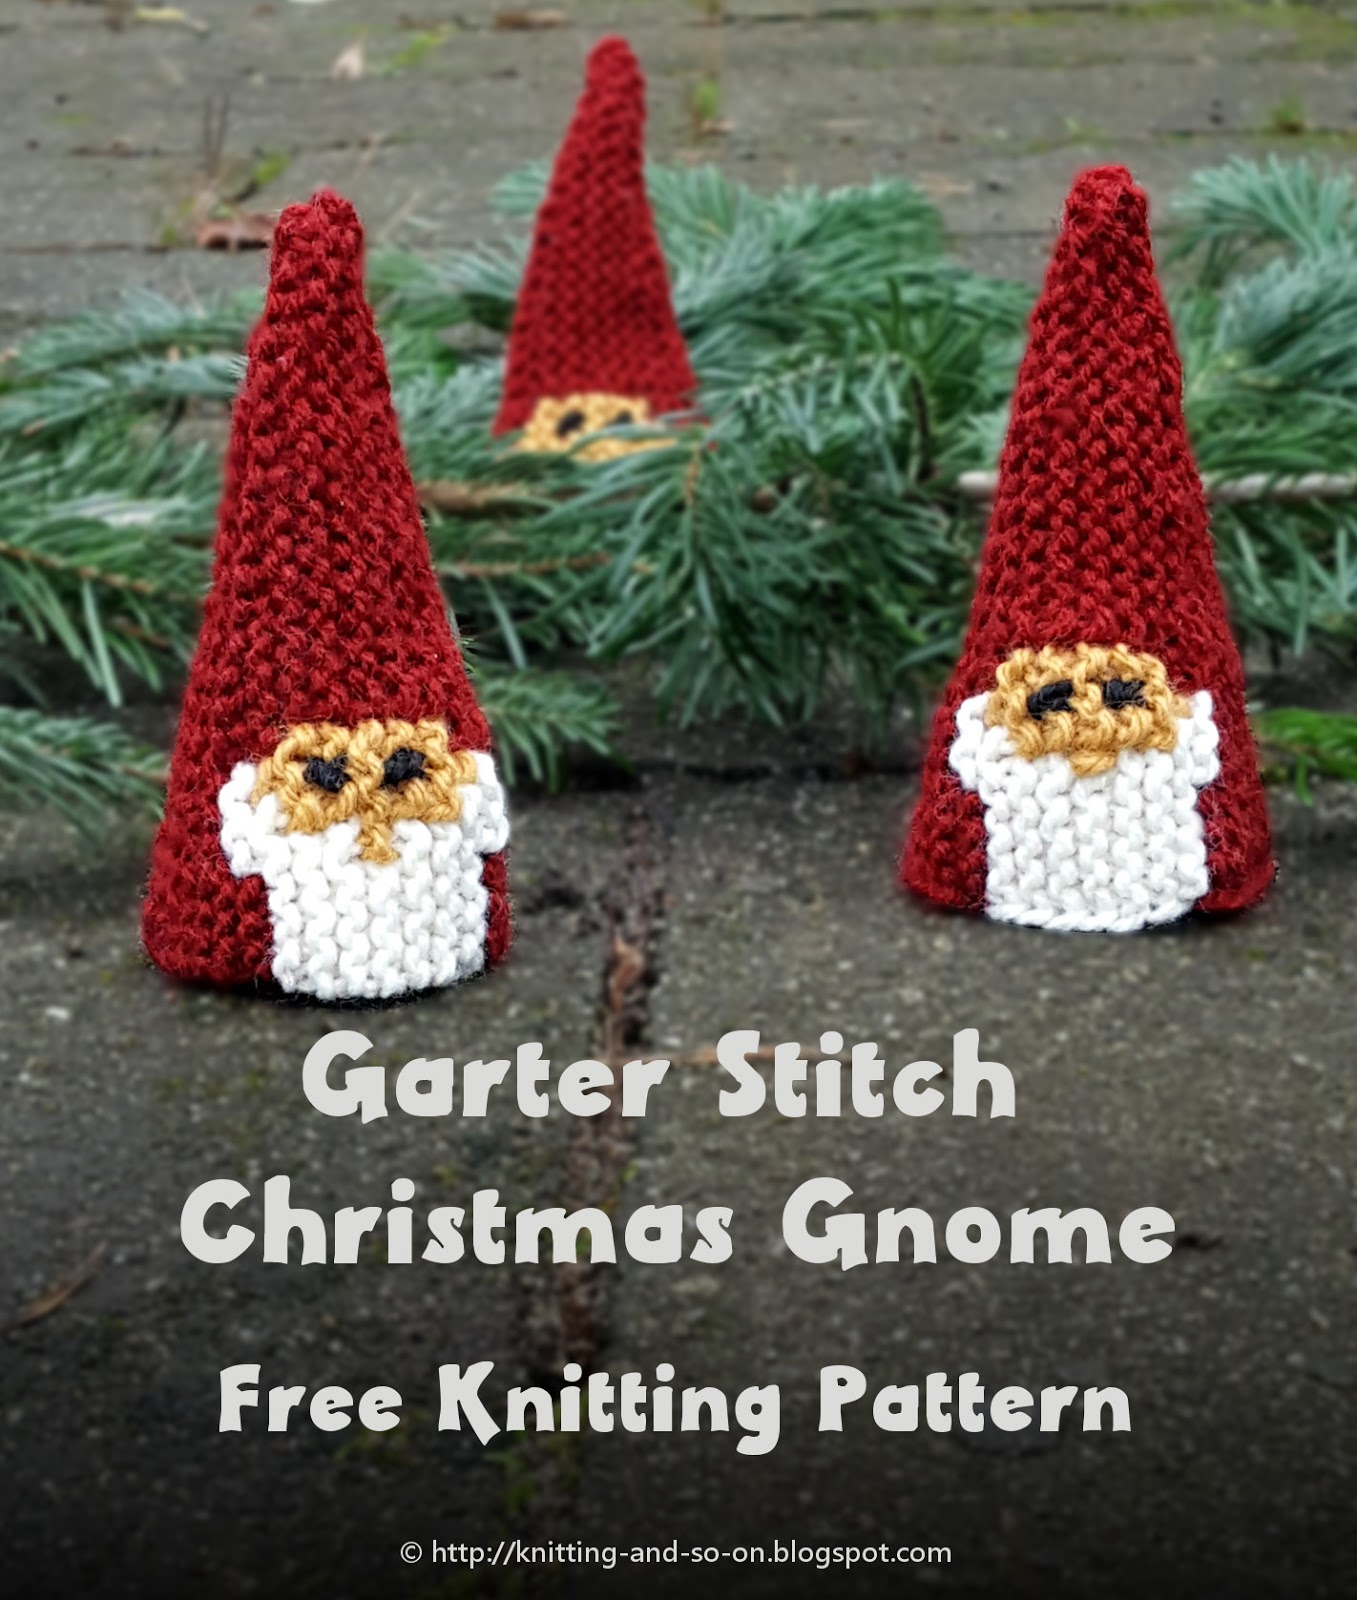 Gnome Knitting Pattern : Knitting and so on: Garter Stitch Christmas Gnome